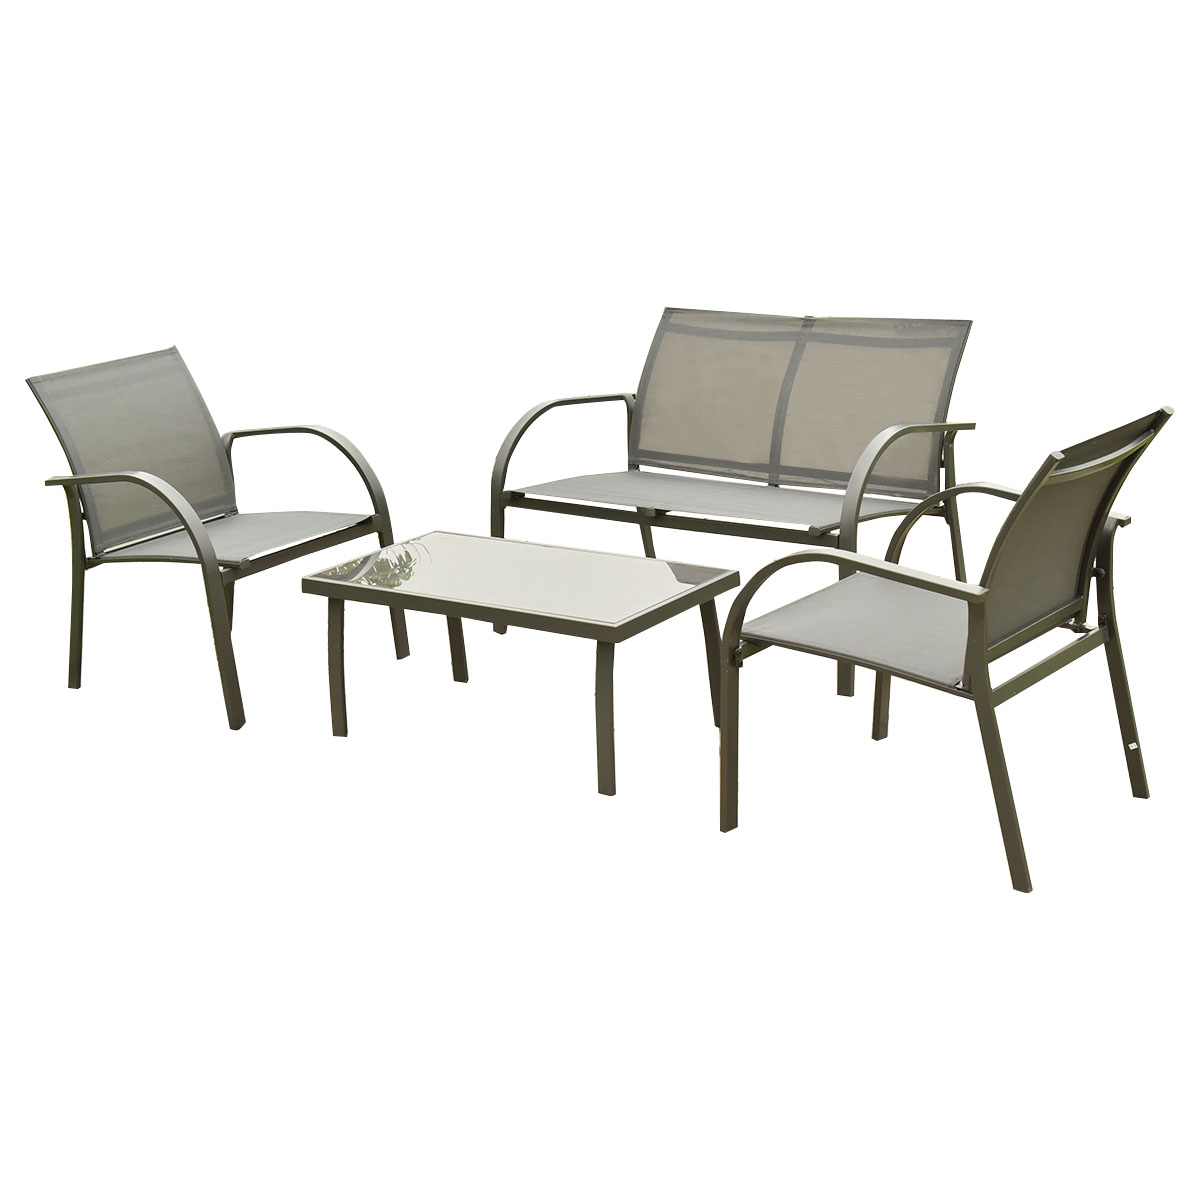 costway 4pcs patio garden furniture set steel frame outdoor lawn sofa chairs table gray walmartcom - Garden Furniture Steel